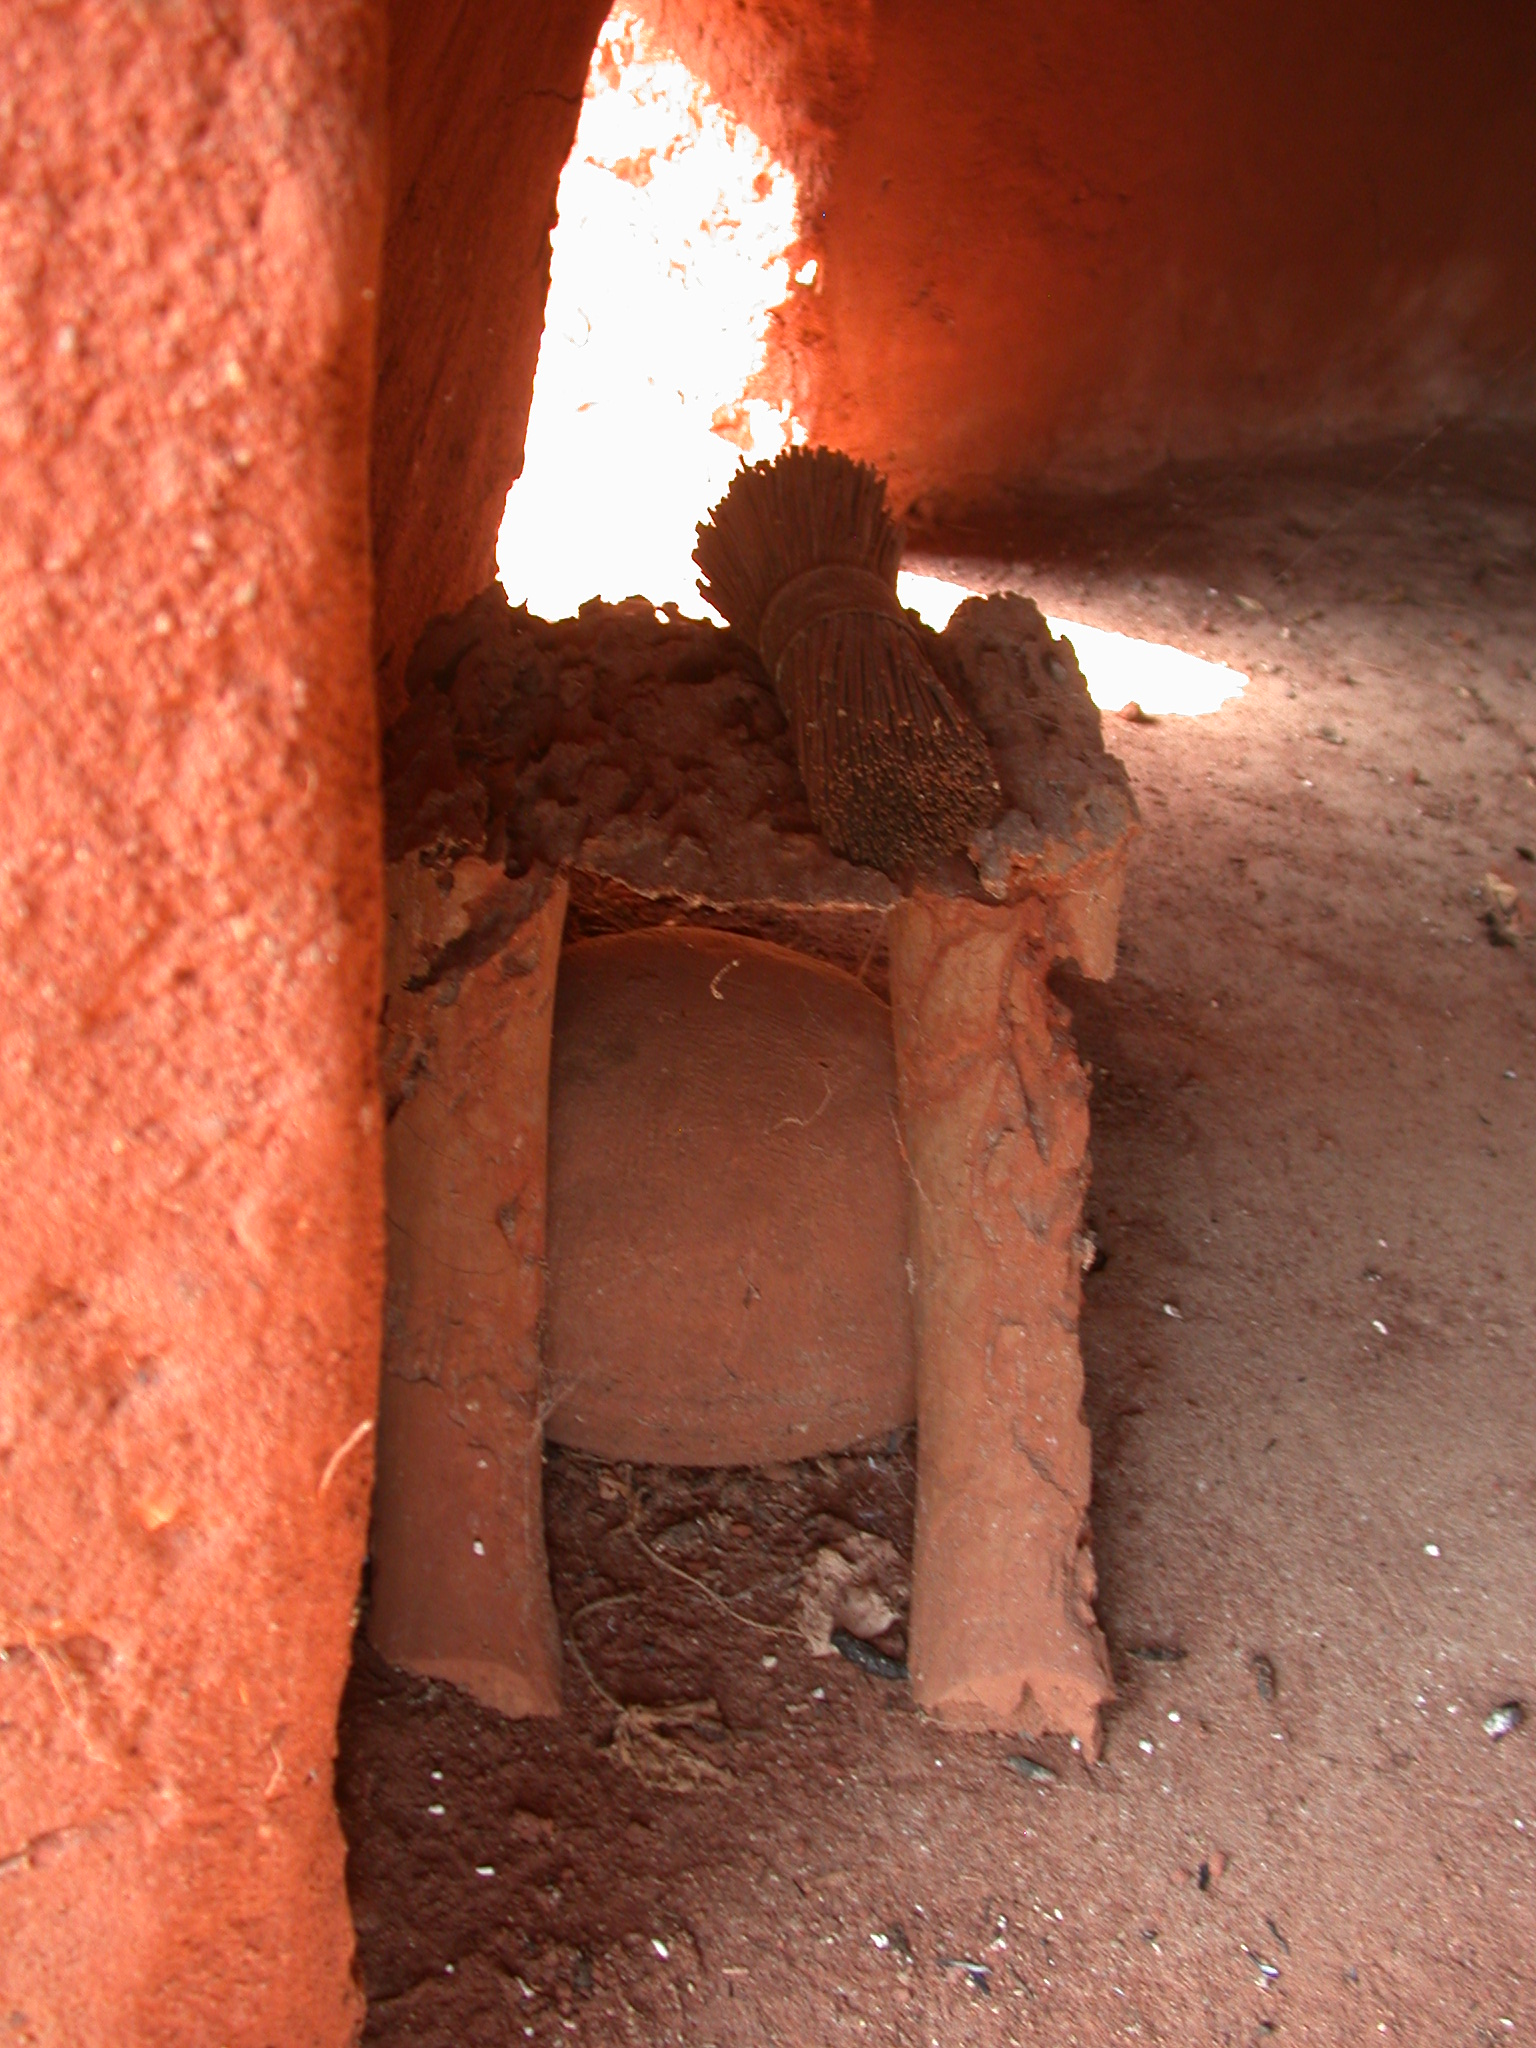 Small Altar, Interior of Reconstructed Hut, Palace of King Houegbadja, Abomey, Benin